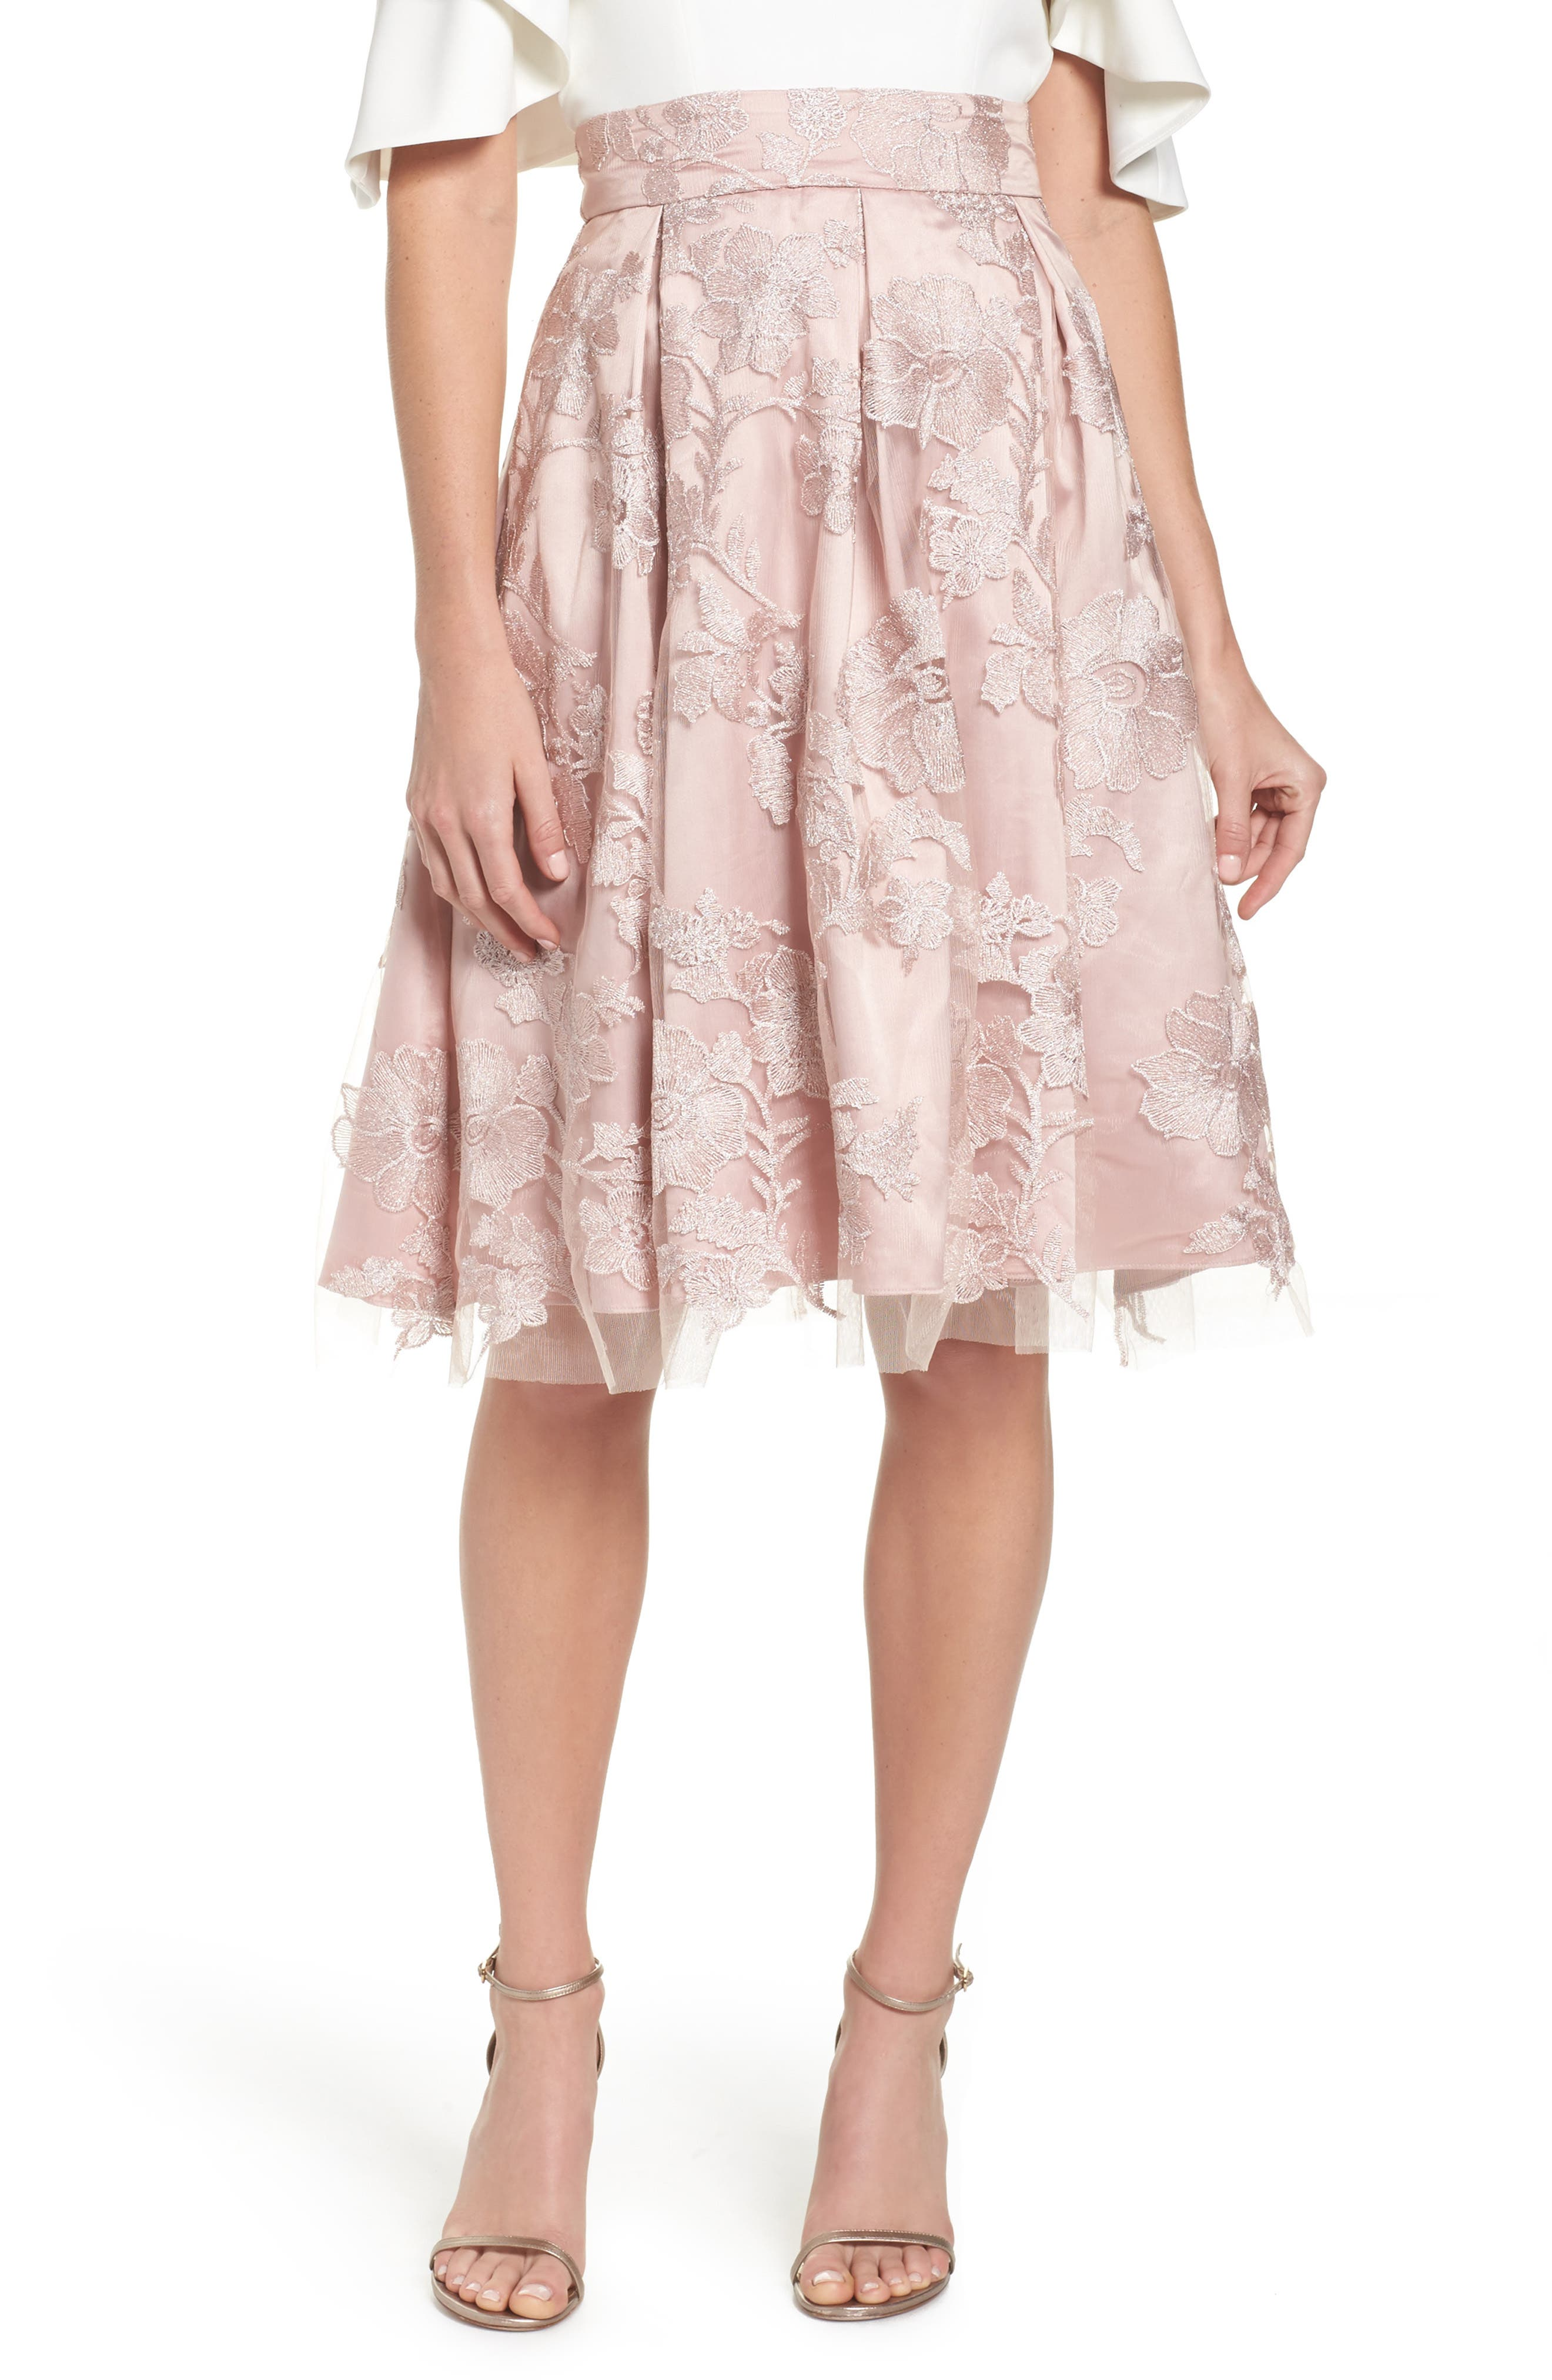 ELIZA J, Floral Embroidered Skirt, Main thumbnail 1, color, 254